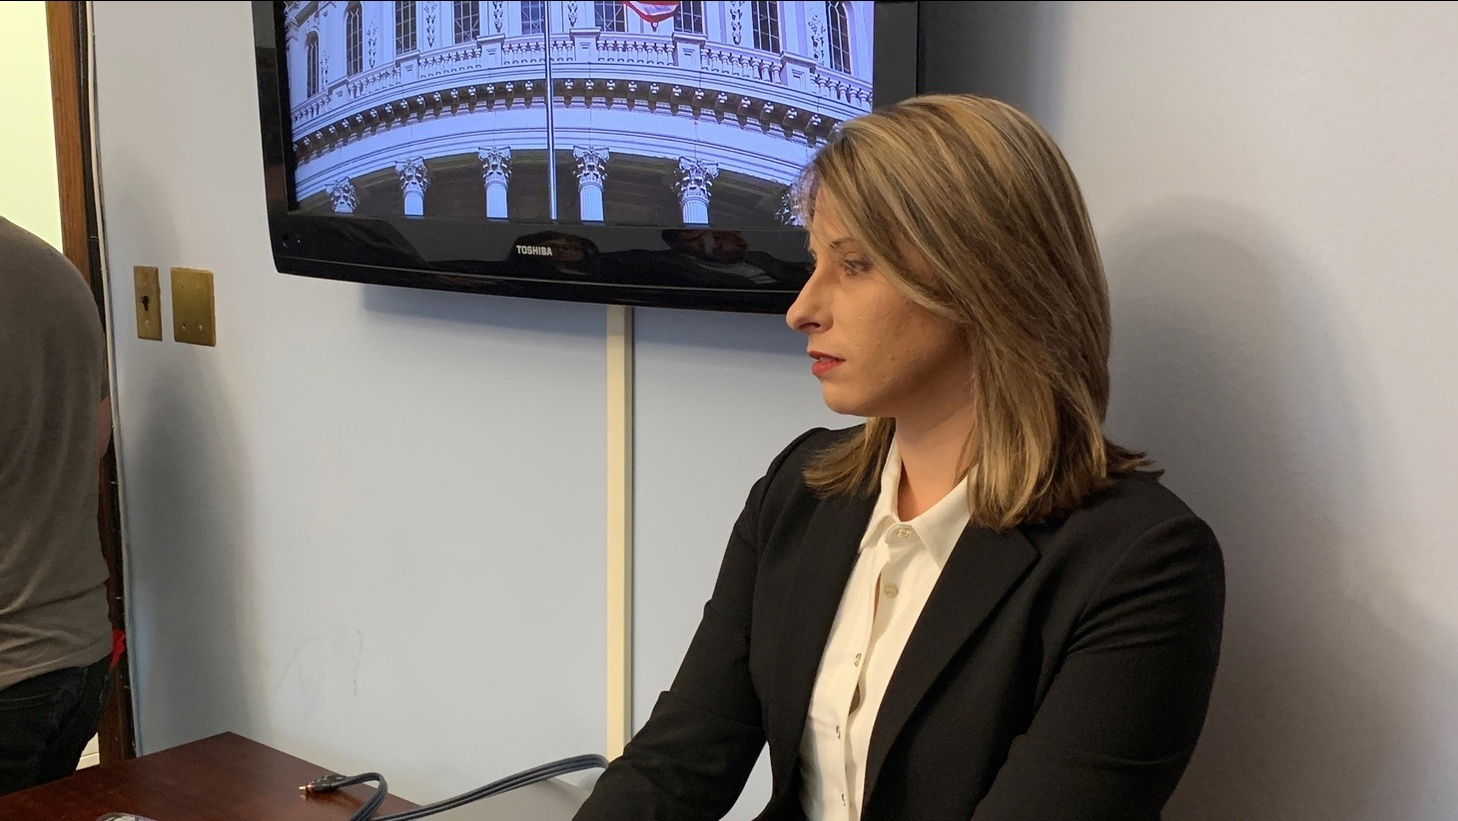 Katie Hill in Washington D.C. in January 2019. Now she has resigned from Congress and is suing over intimate photos of her that were leaked.